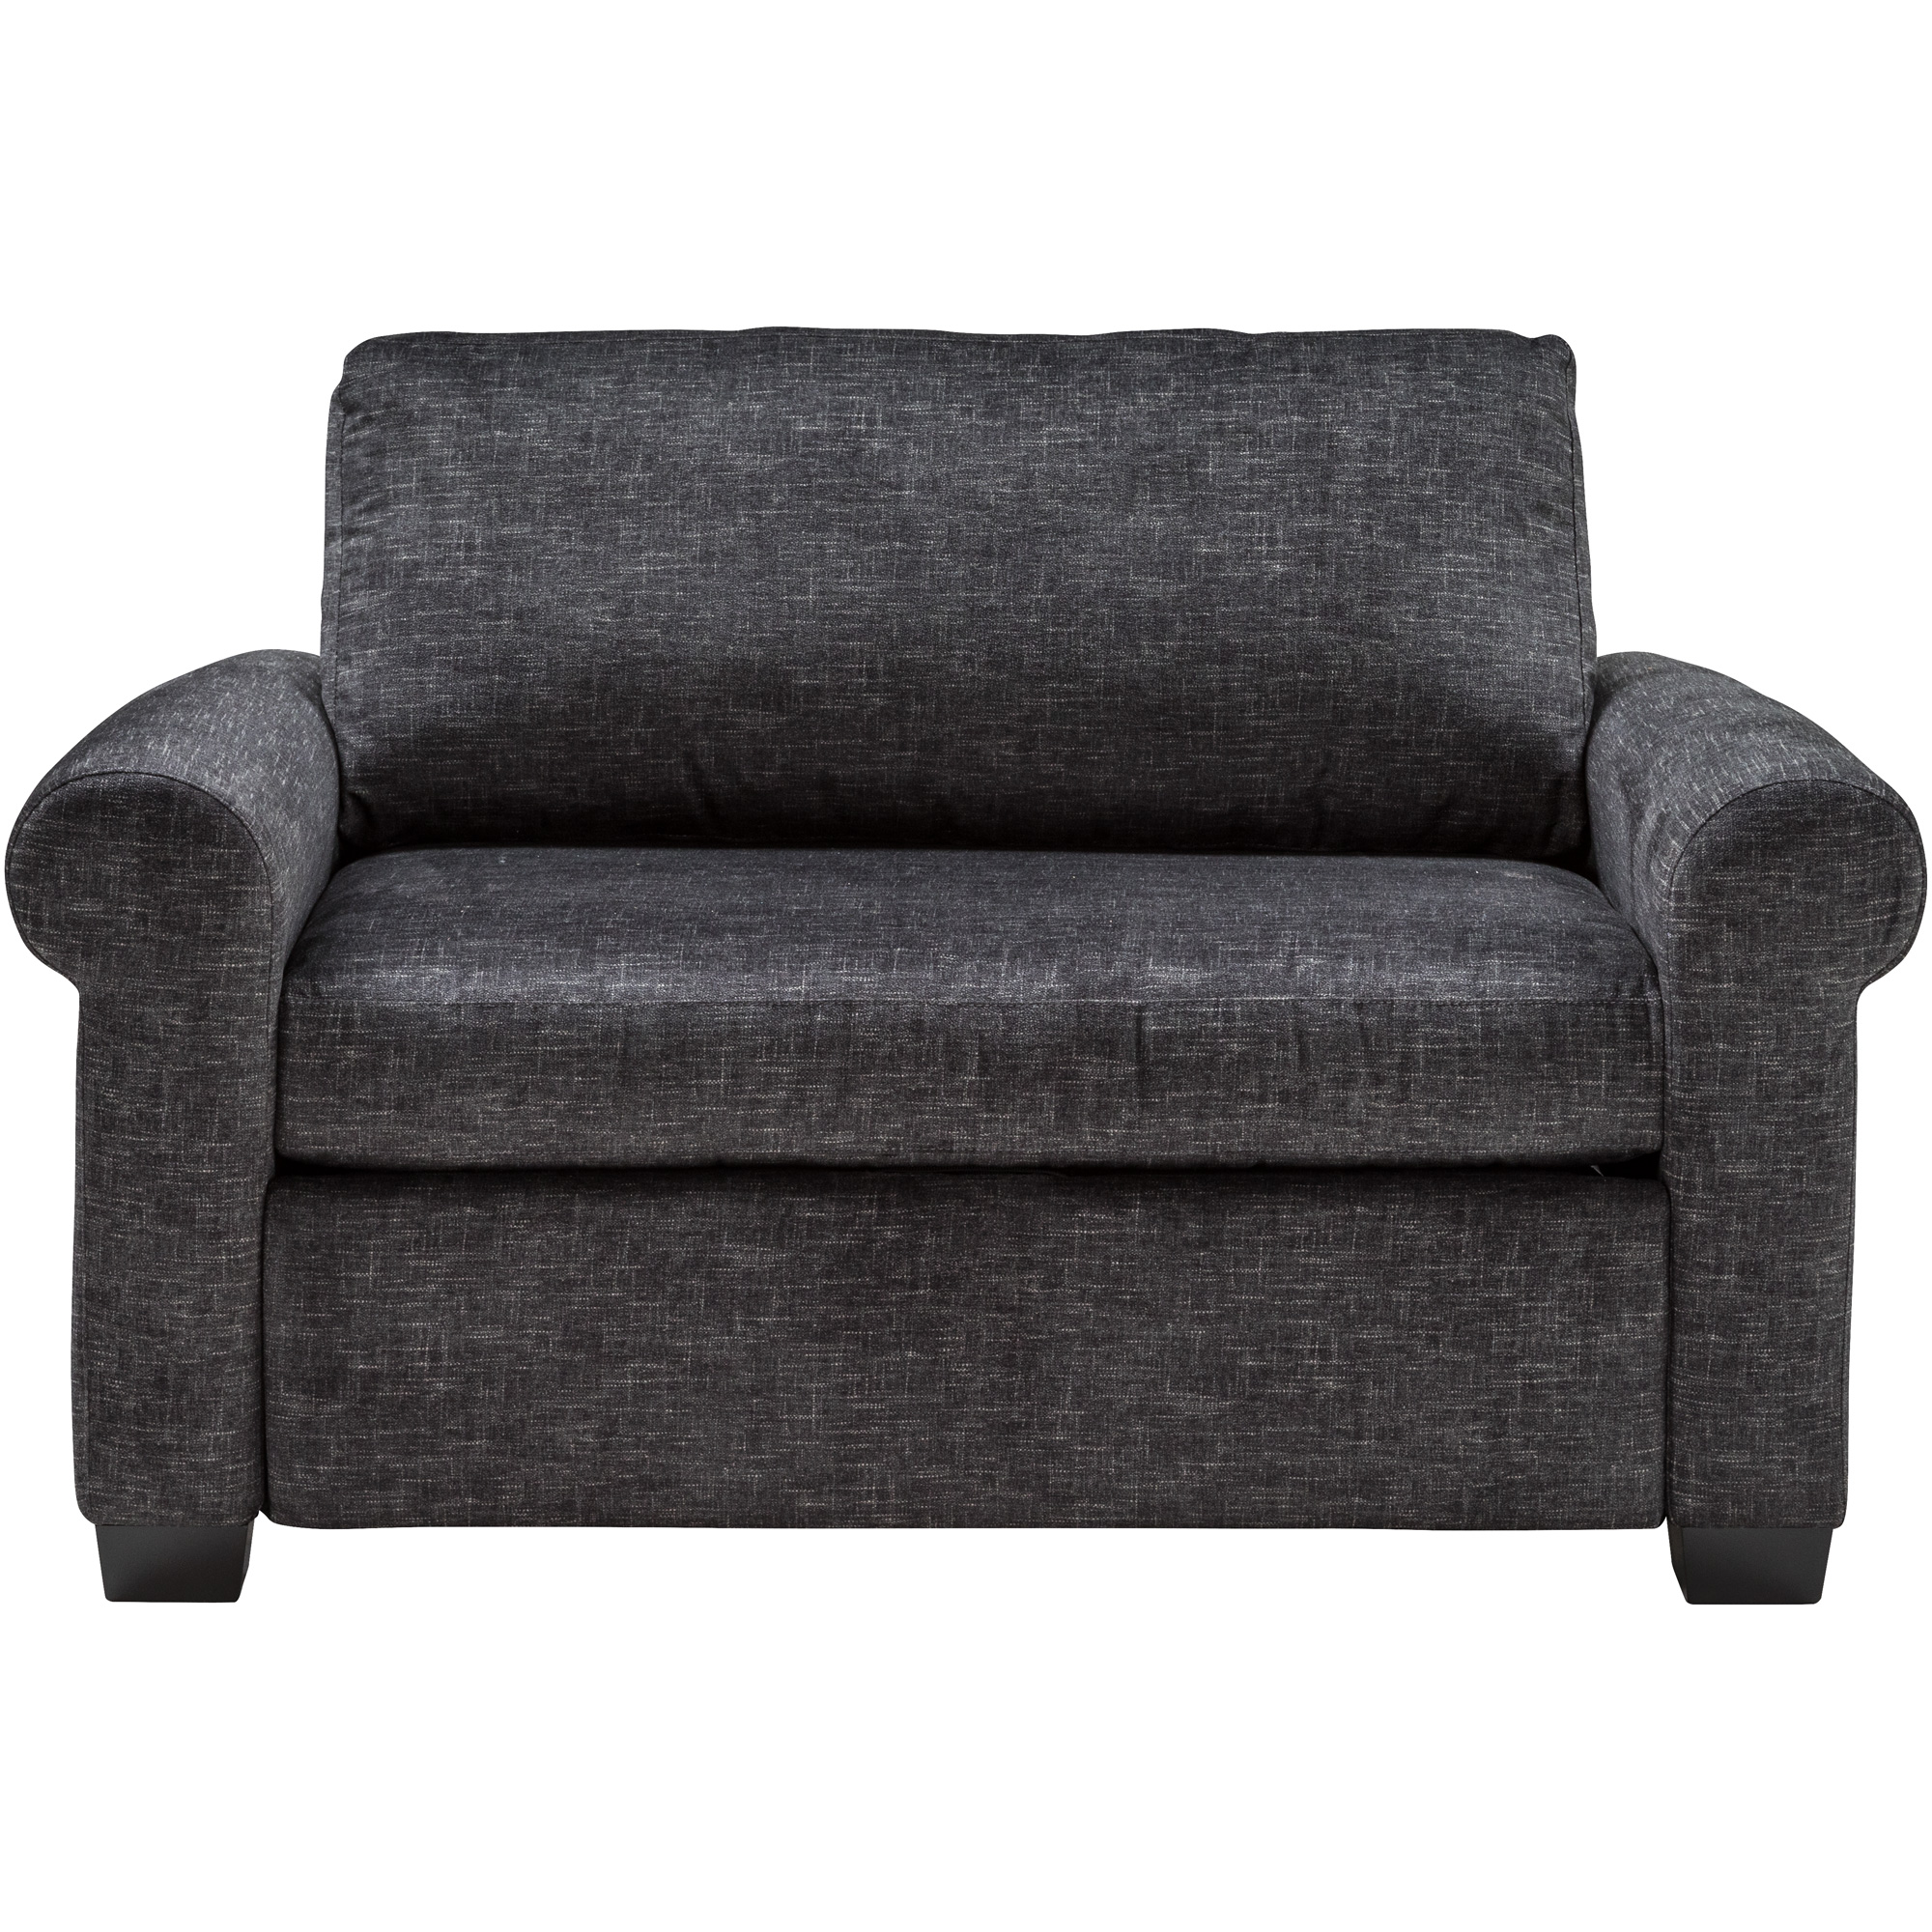 American Leather | Cortland Alton Charcoal Twin Sleeper Sofa